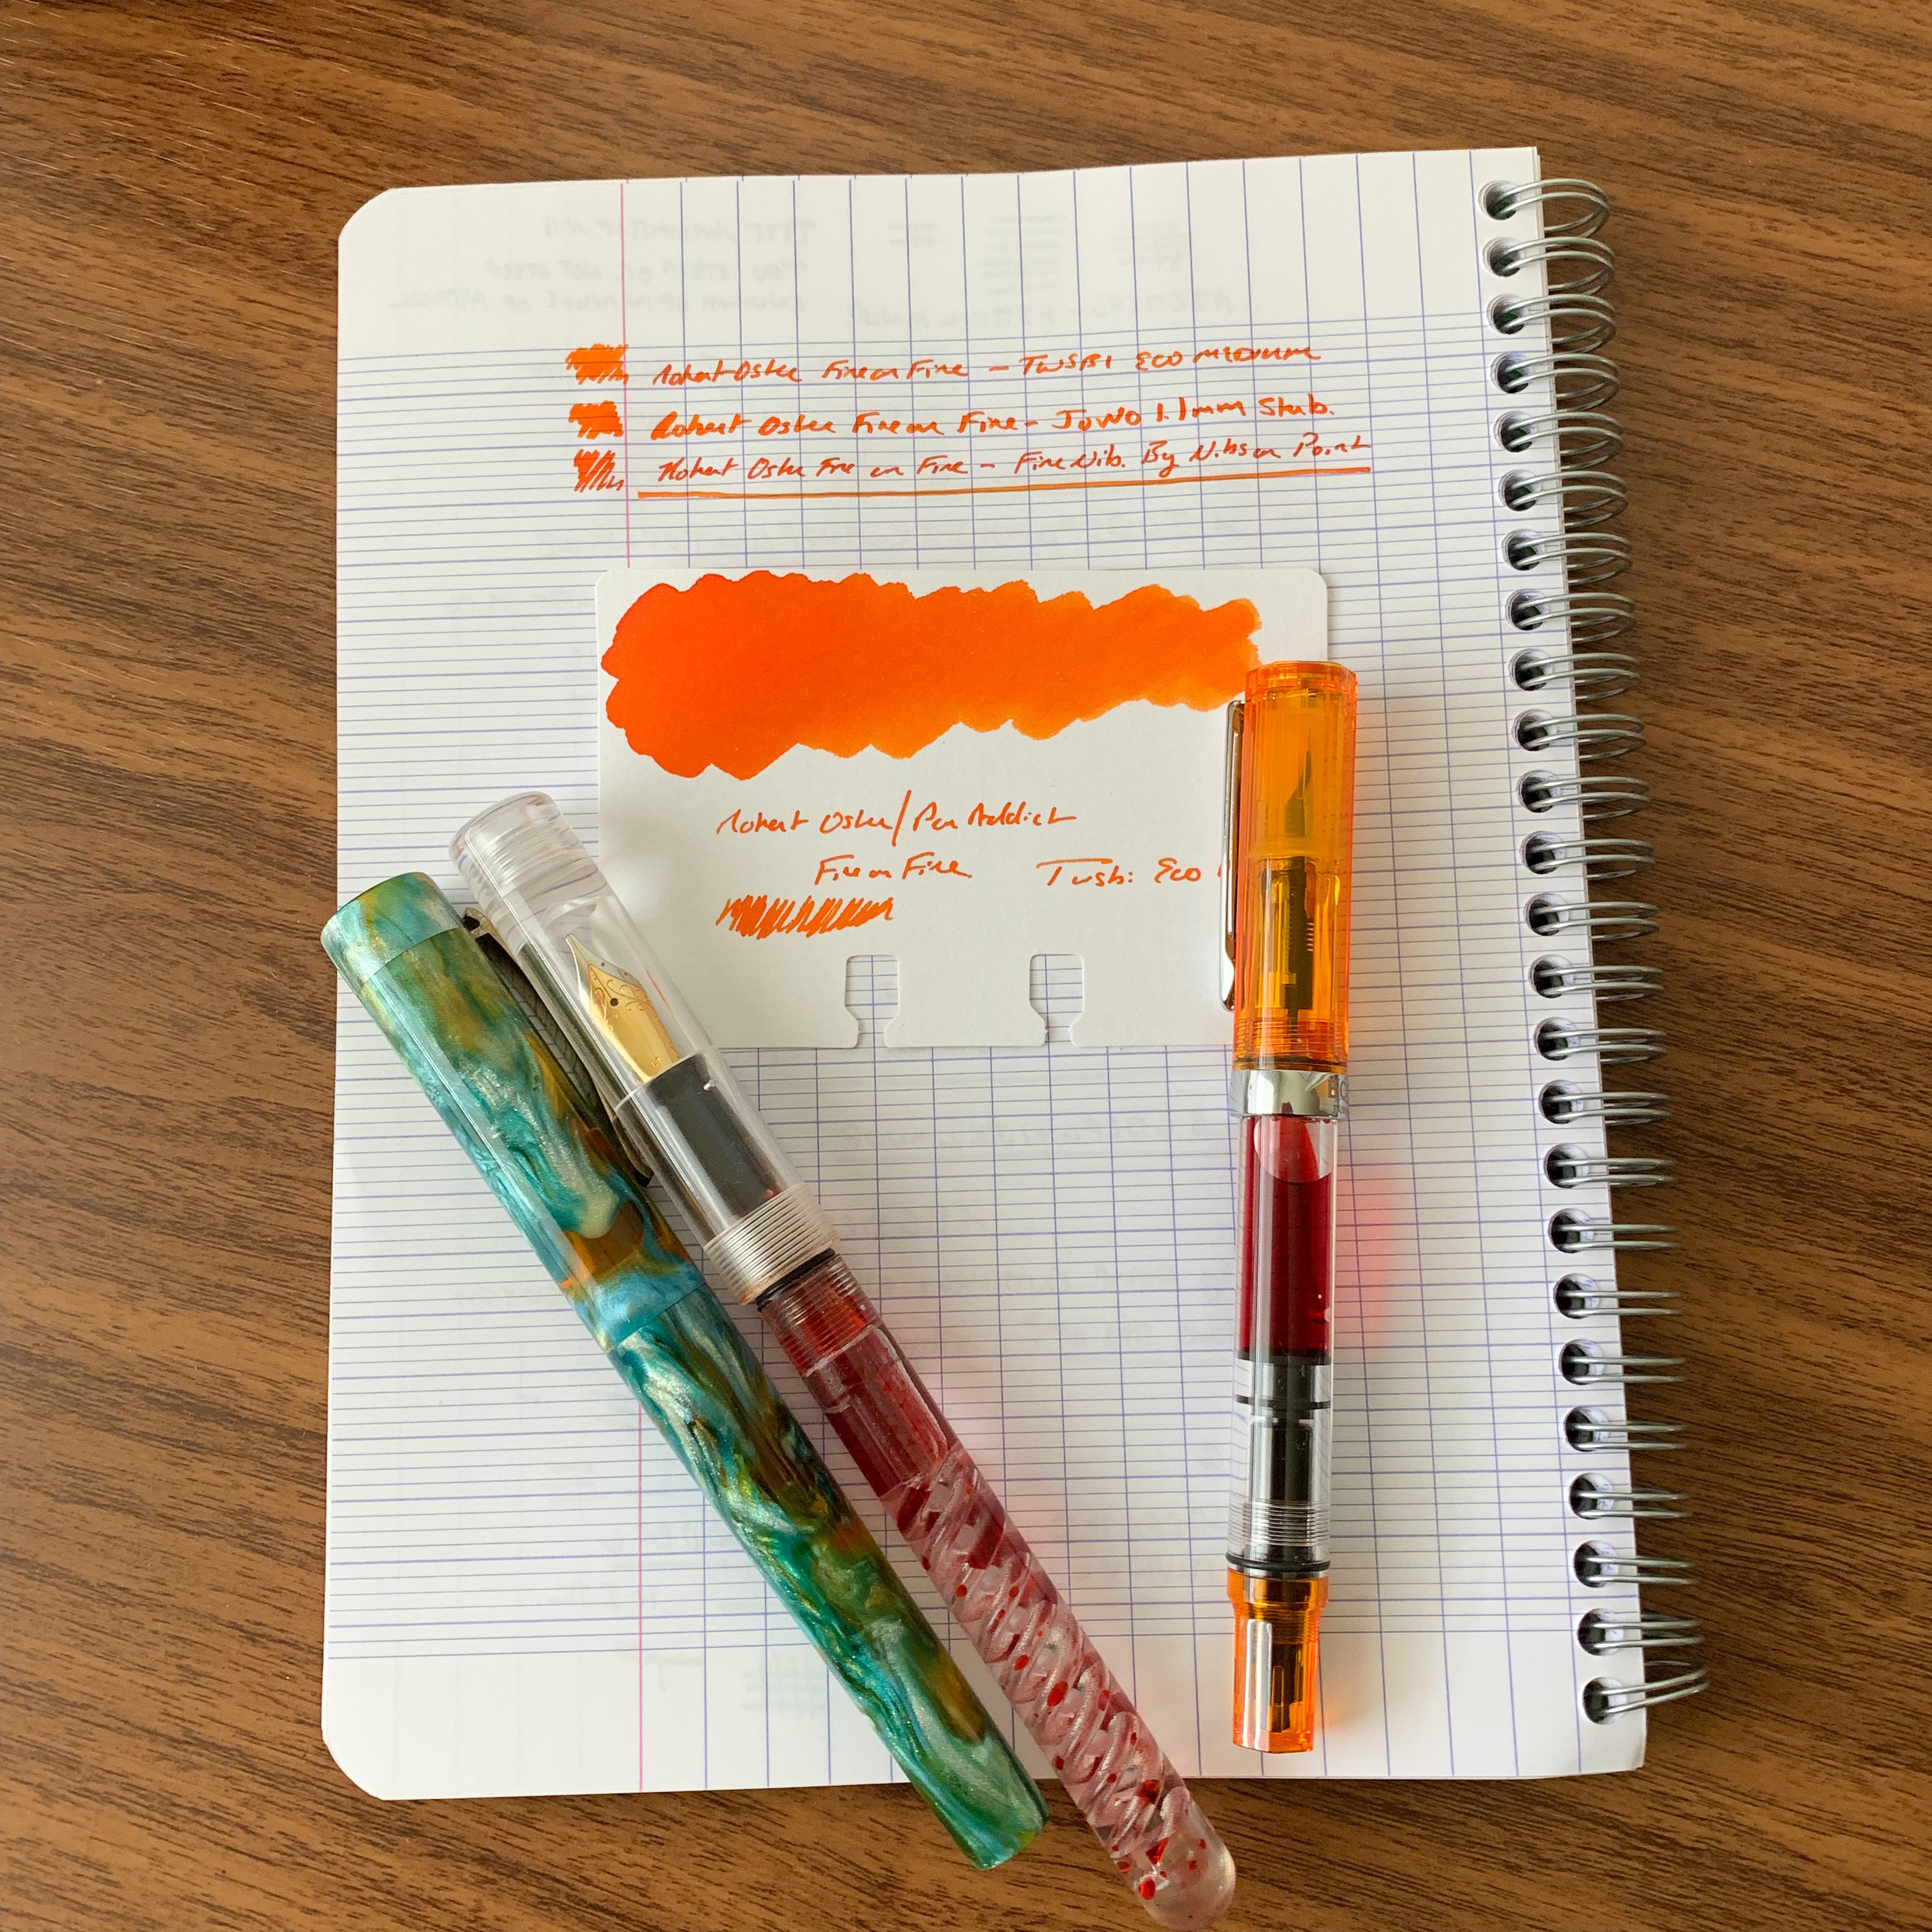 Tested in three pens: From left,  Kanilea Pen Company Hanauma Bay  with a fine nib from  Nibs on Point ; a JoWo 1.1mm Stub in an  Additive Pens Double Helix Eyedropper , and the TWSBI Eco Transparent Orange pictured here.